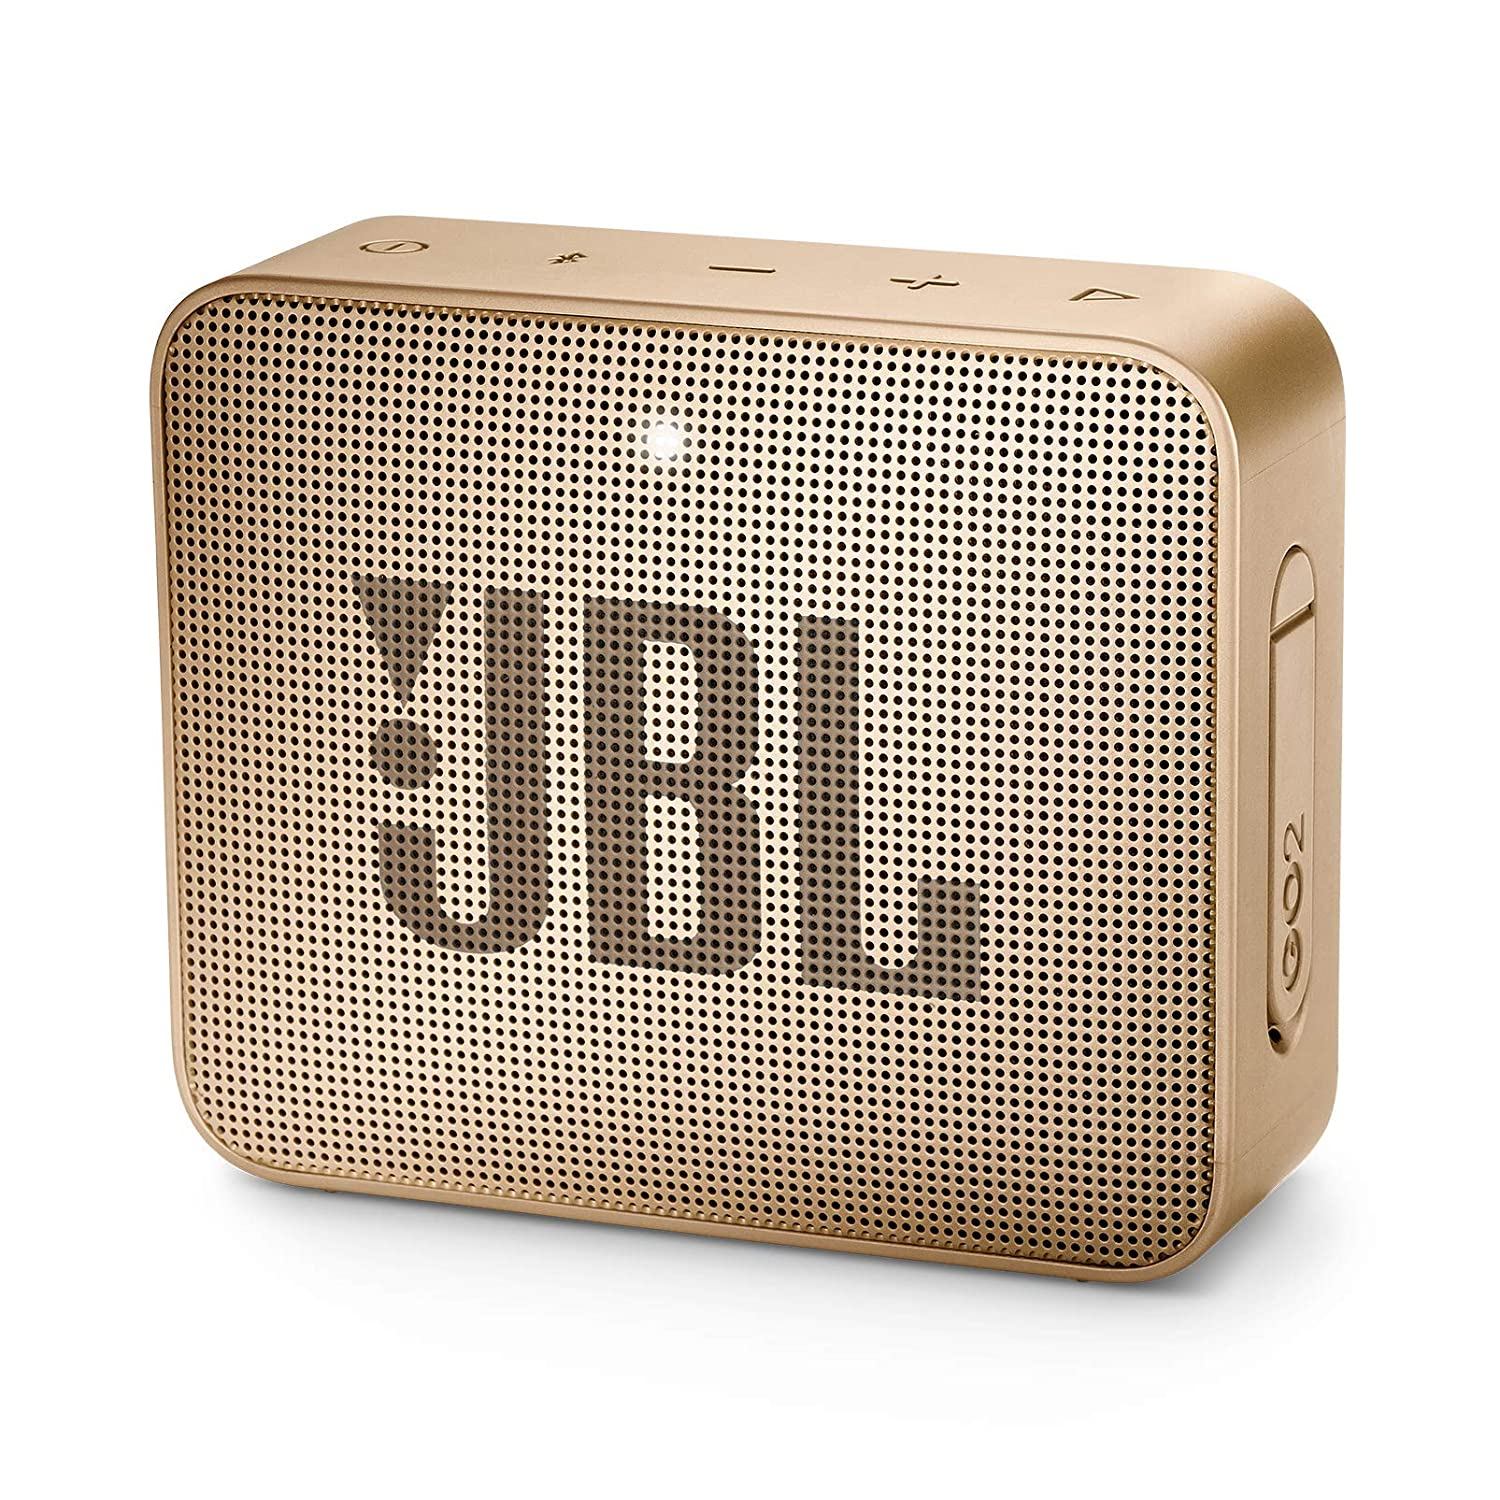 JBL JBLGO2CPN GO 2 Portable Bluetooth Waterproof Speaker (Champagne), 4.3 x 4.5 x 1.5